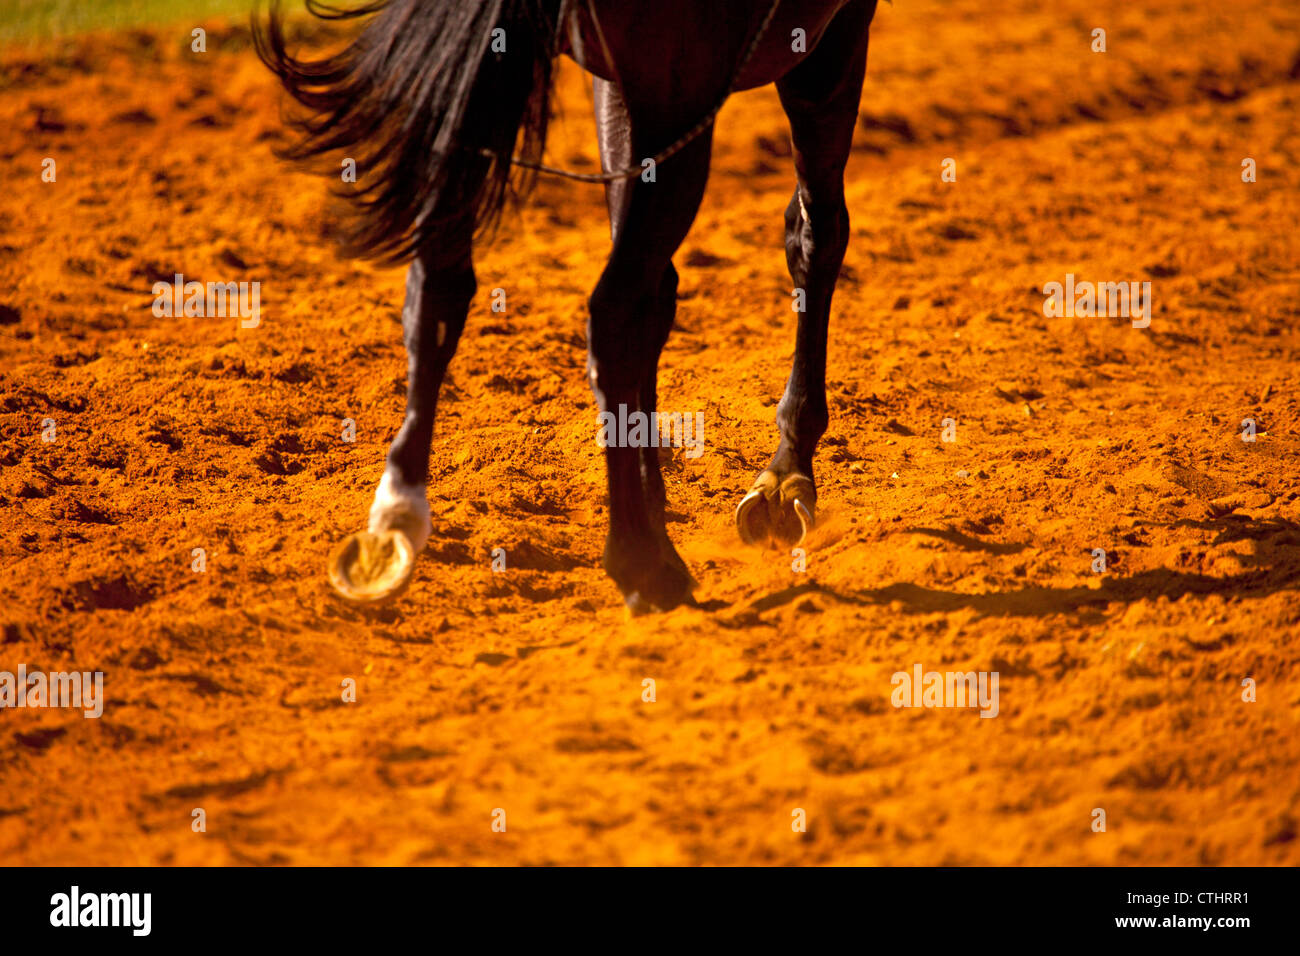 A close up image of the hooves of a racehorse in the red sand on the training course - Stock Image